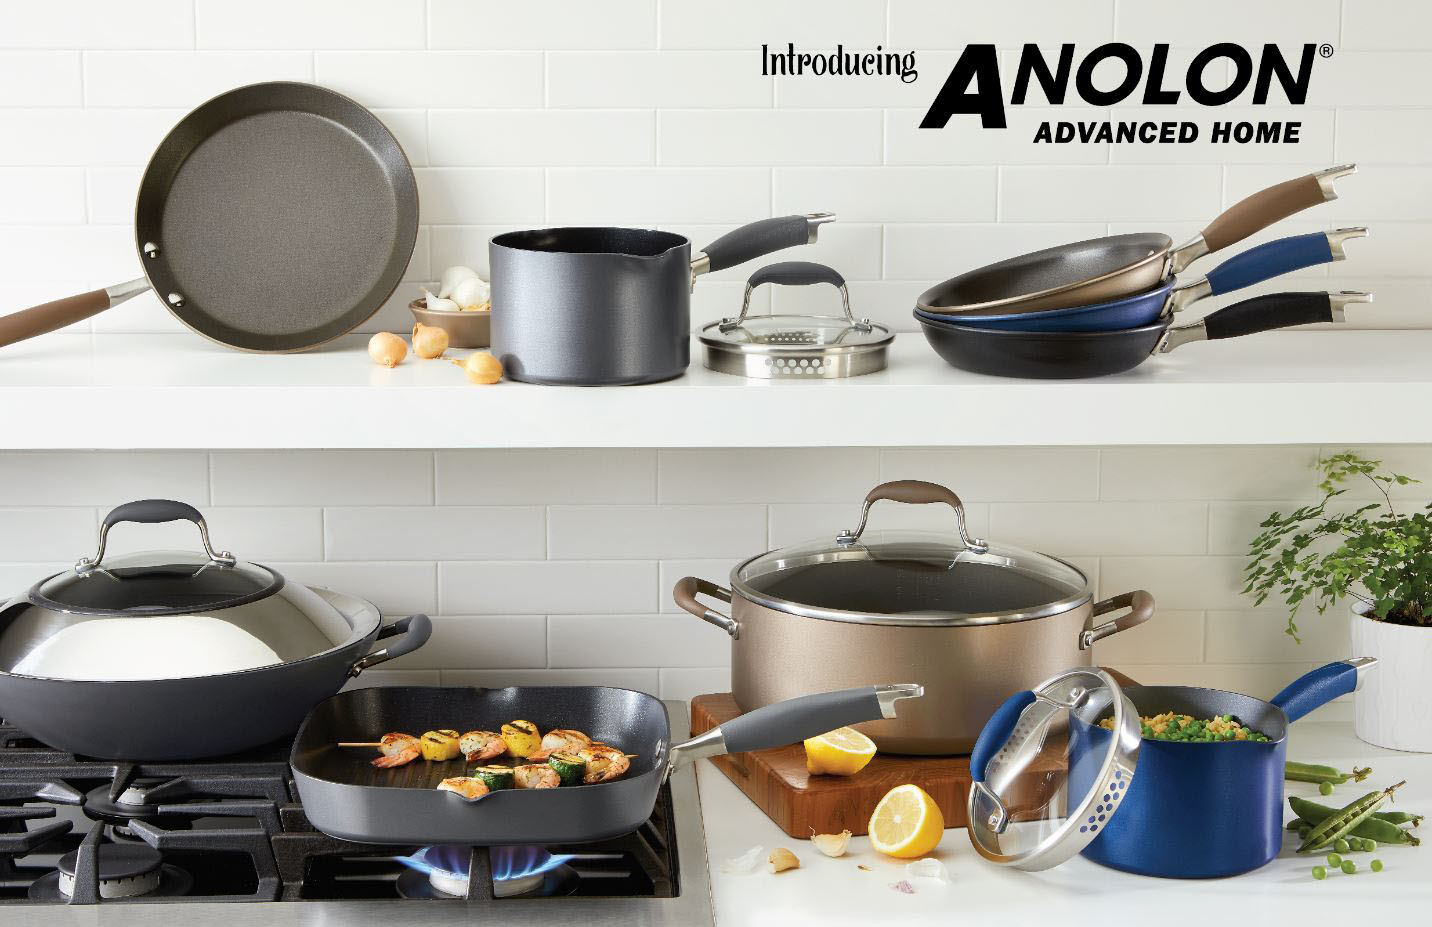 Introducing Anolon Advanced Home